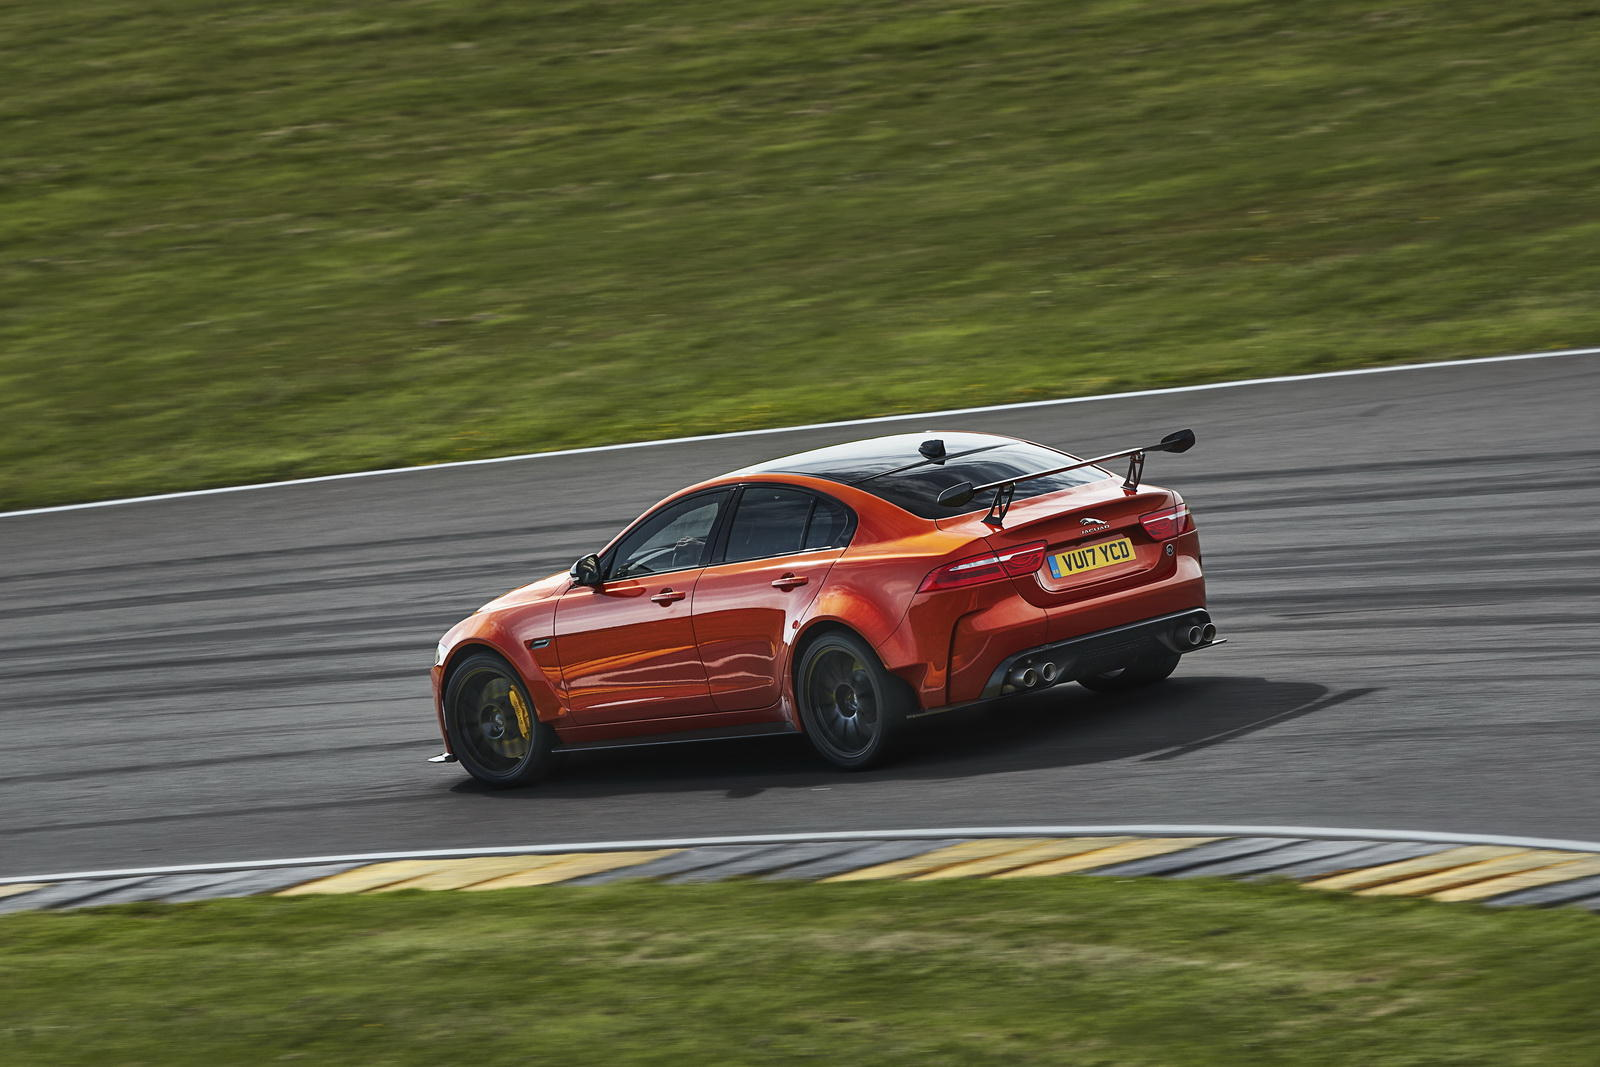 jaguar XE SV Project 8 - jaguar XE SV Project 8